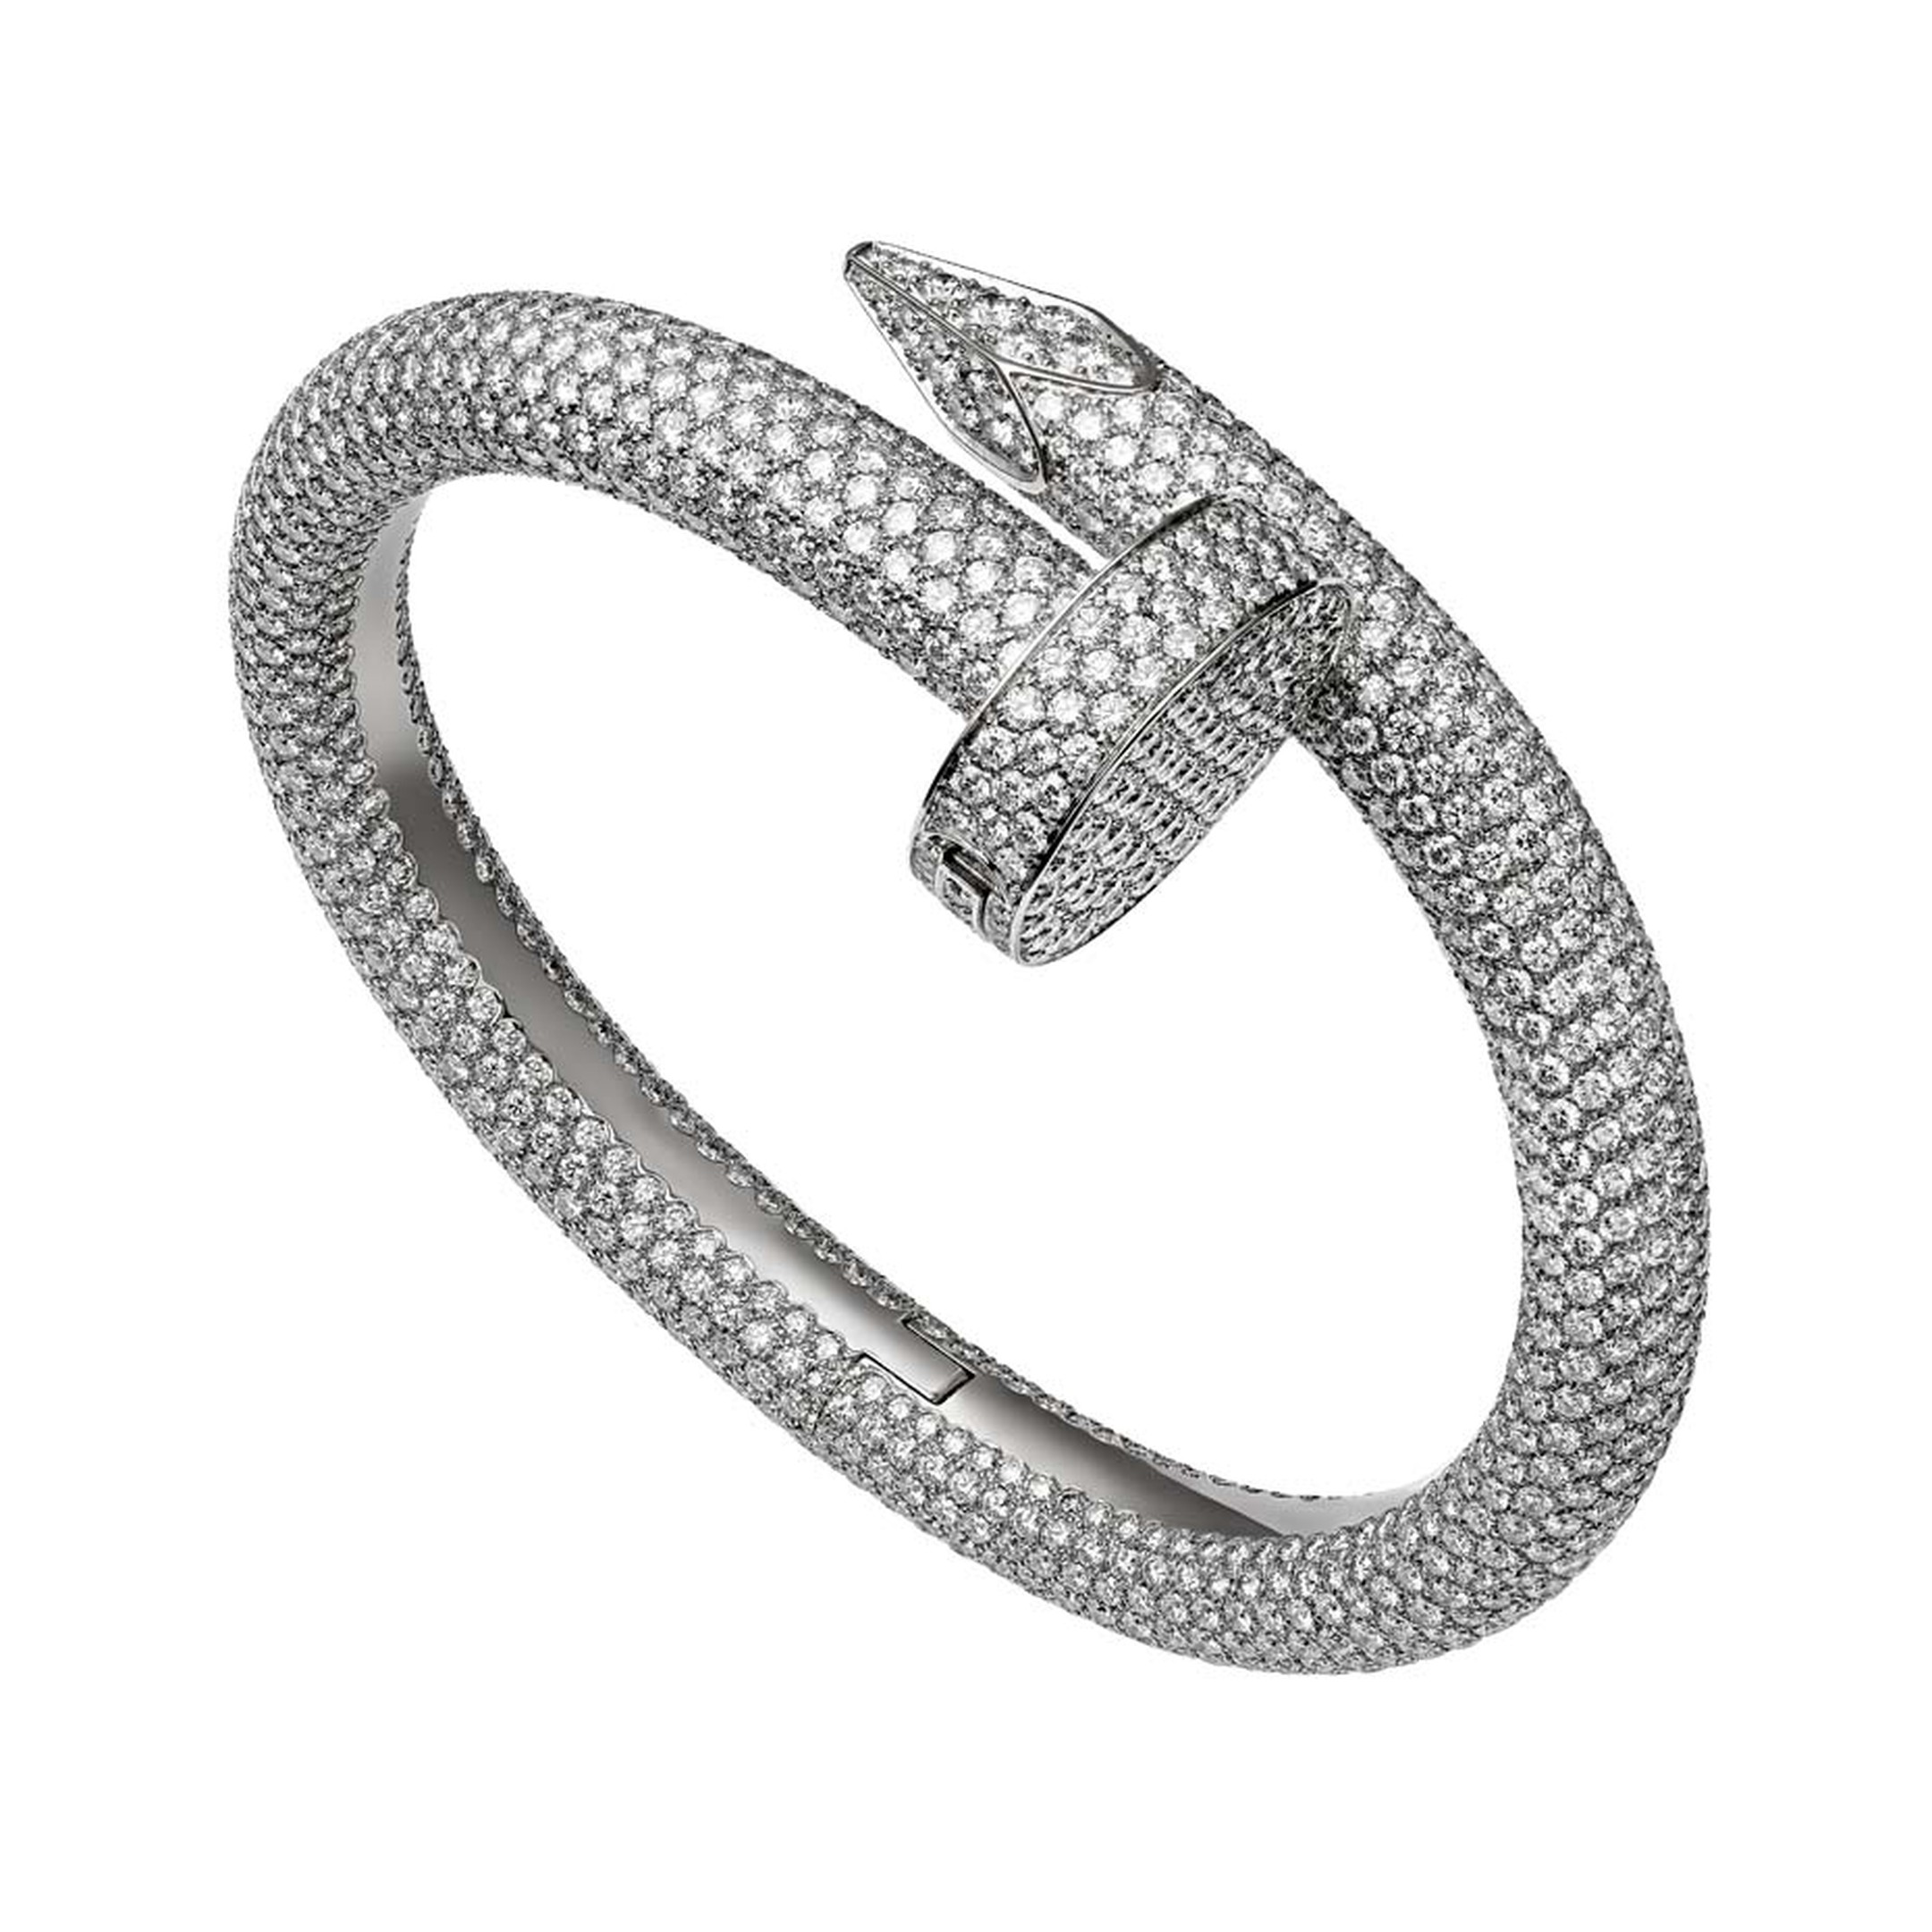 A fully diamond-pavéd interpretation of Cartier's Juste un Clou bracelet - a triumphant design from the 1970s - was launched recently.